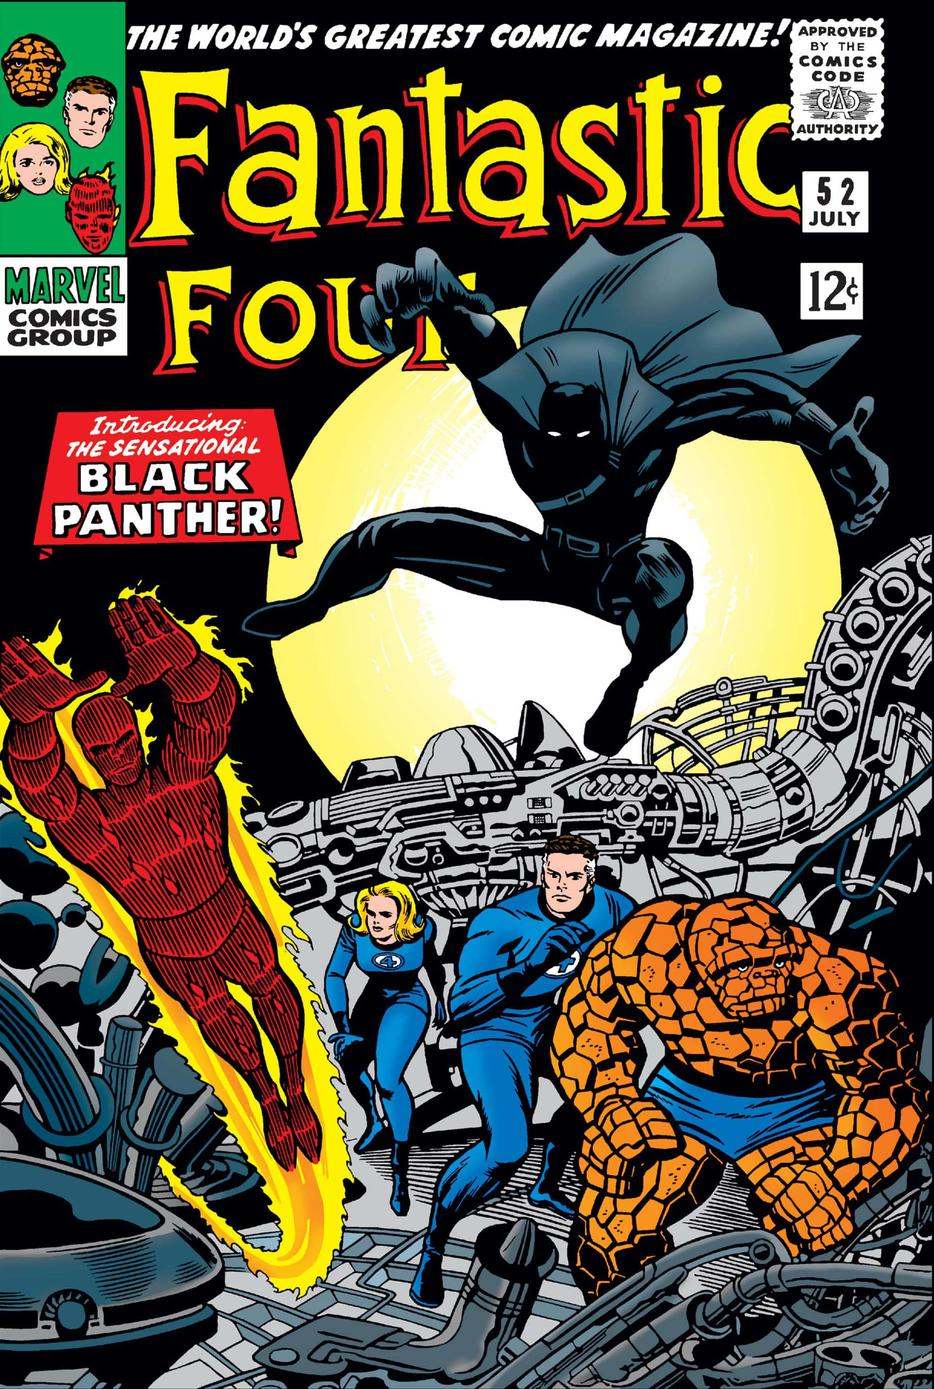 FANTASTIC FOUR (1961) #52, the first appearance of Black Panther